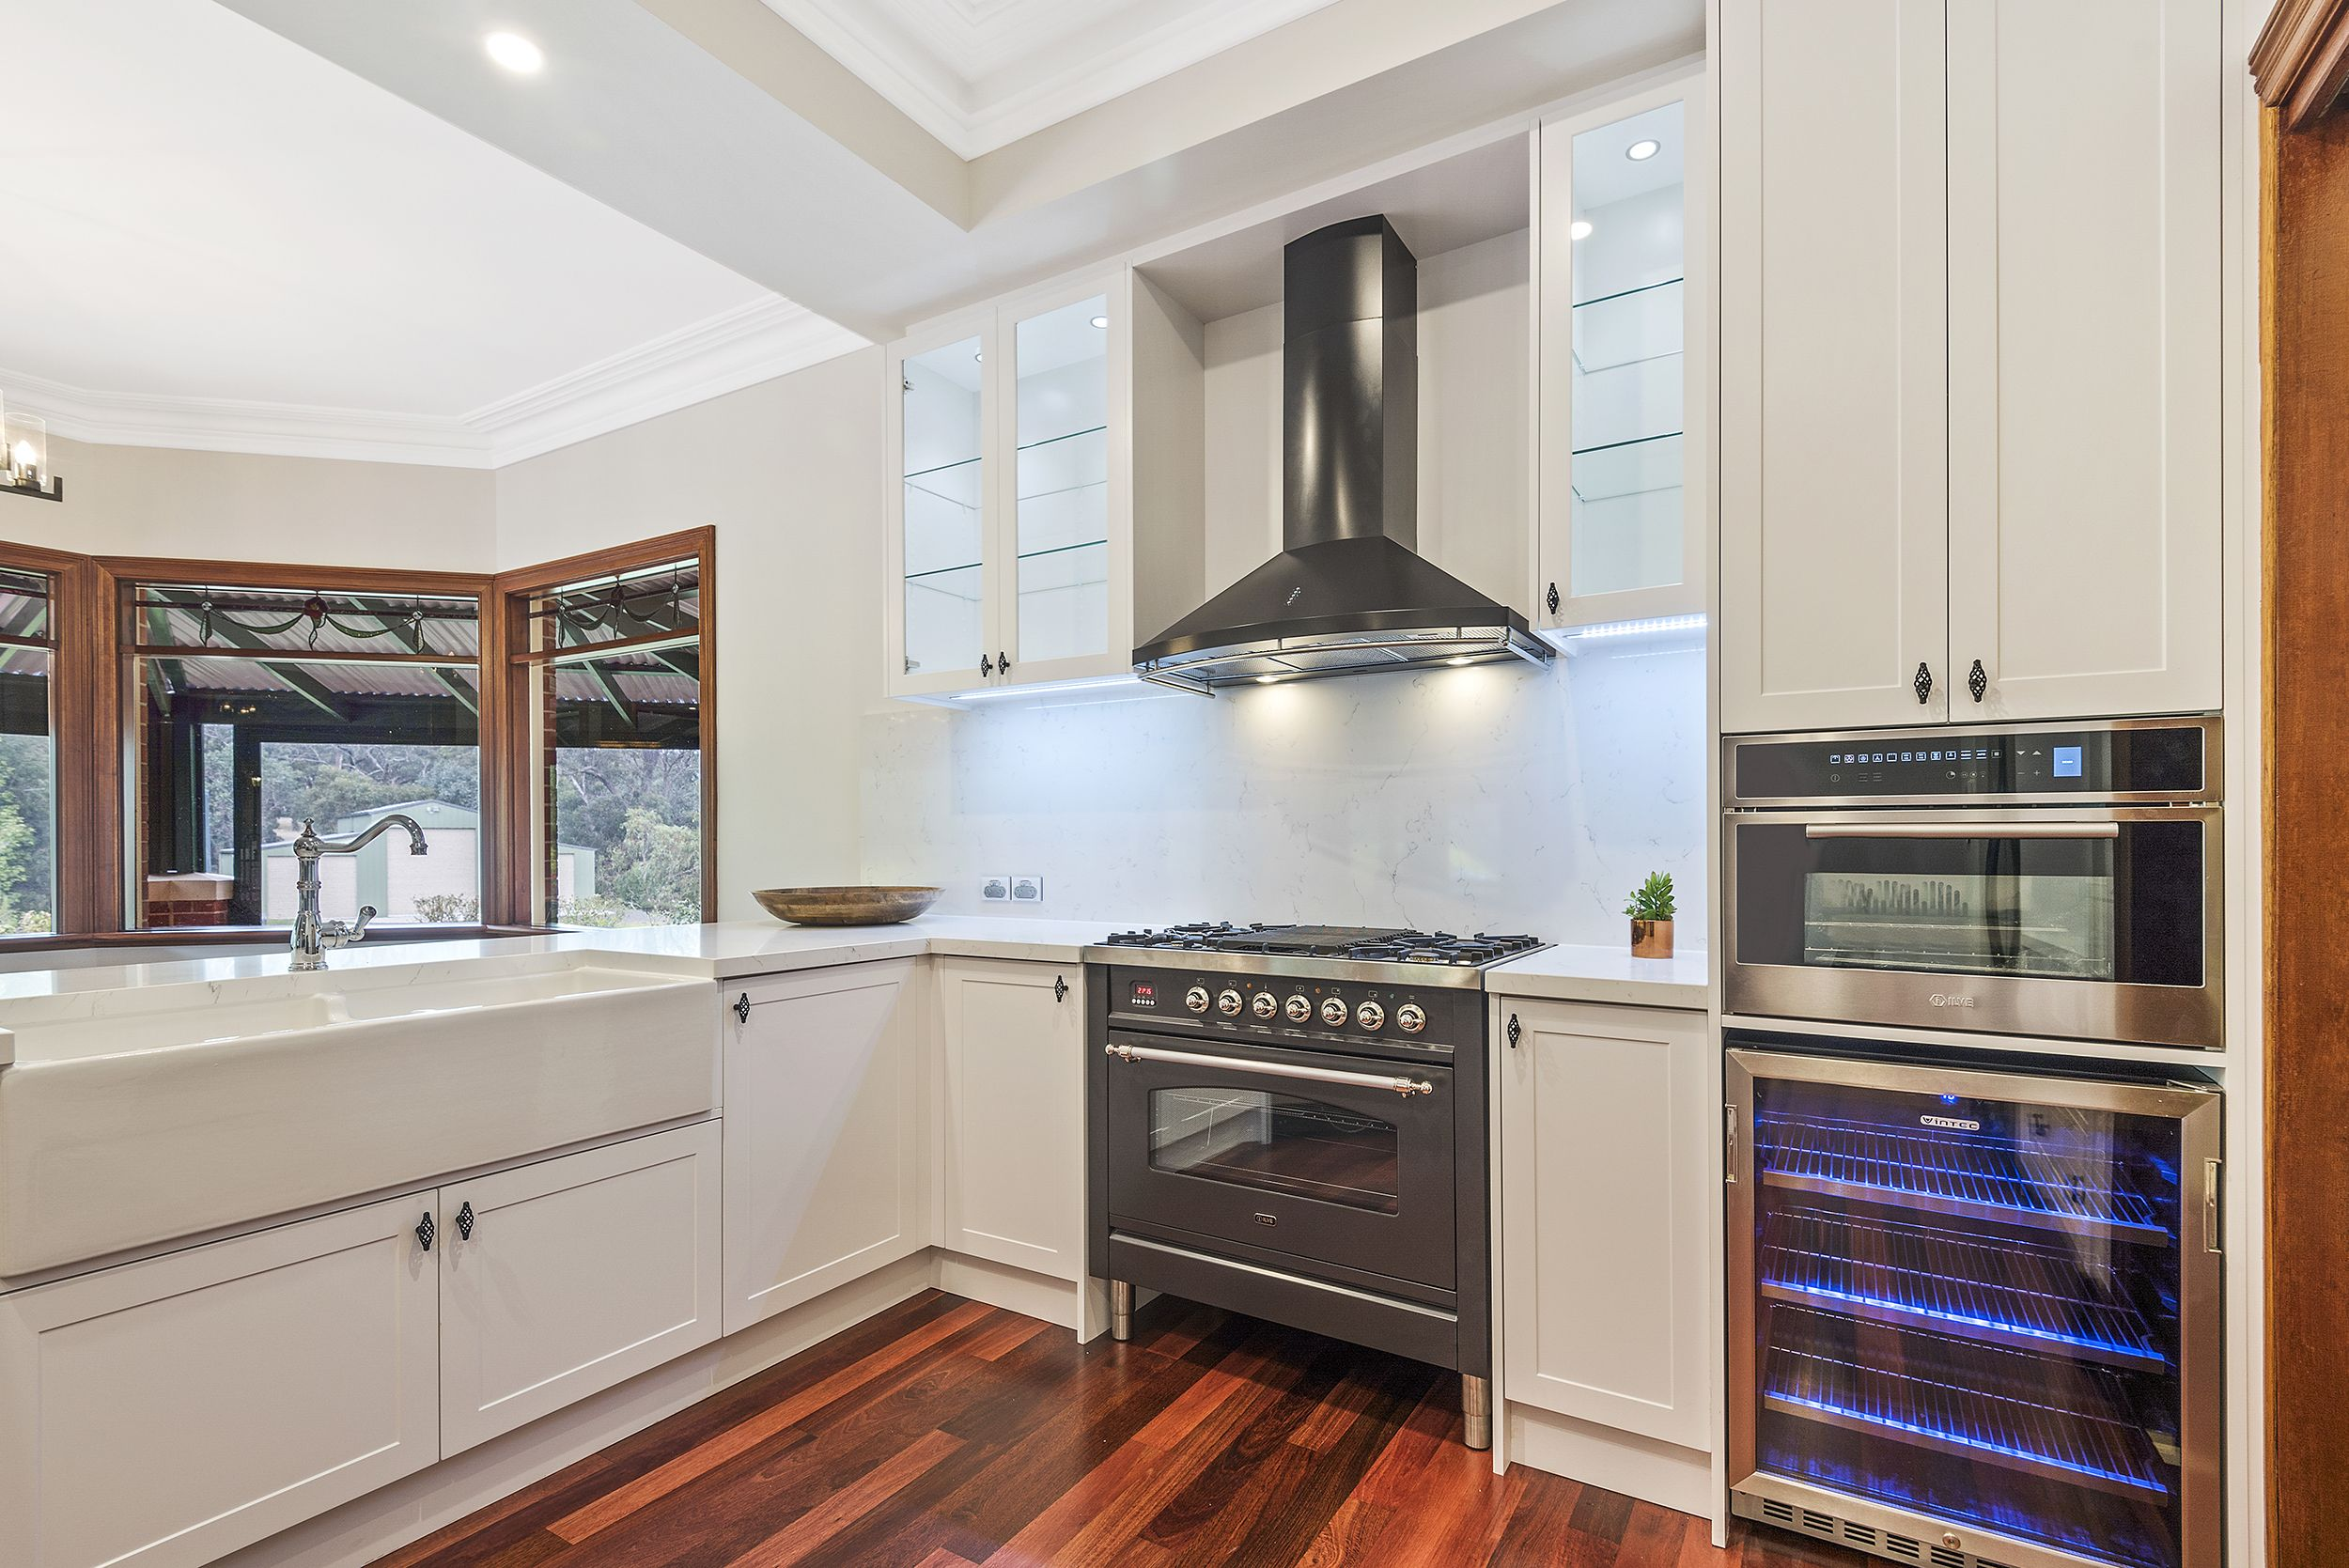 Here is our latest kitchen renovation in beautiful